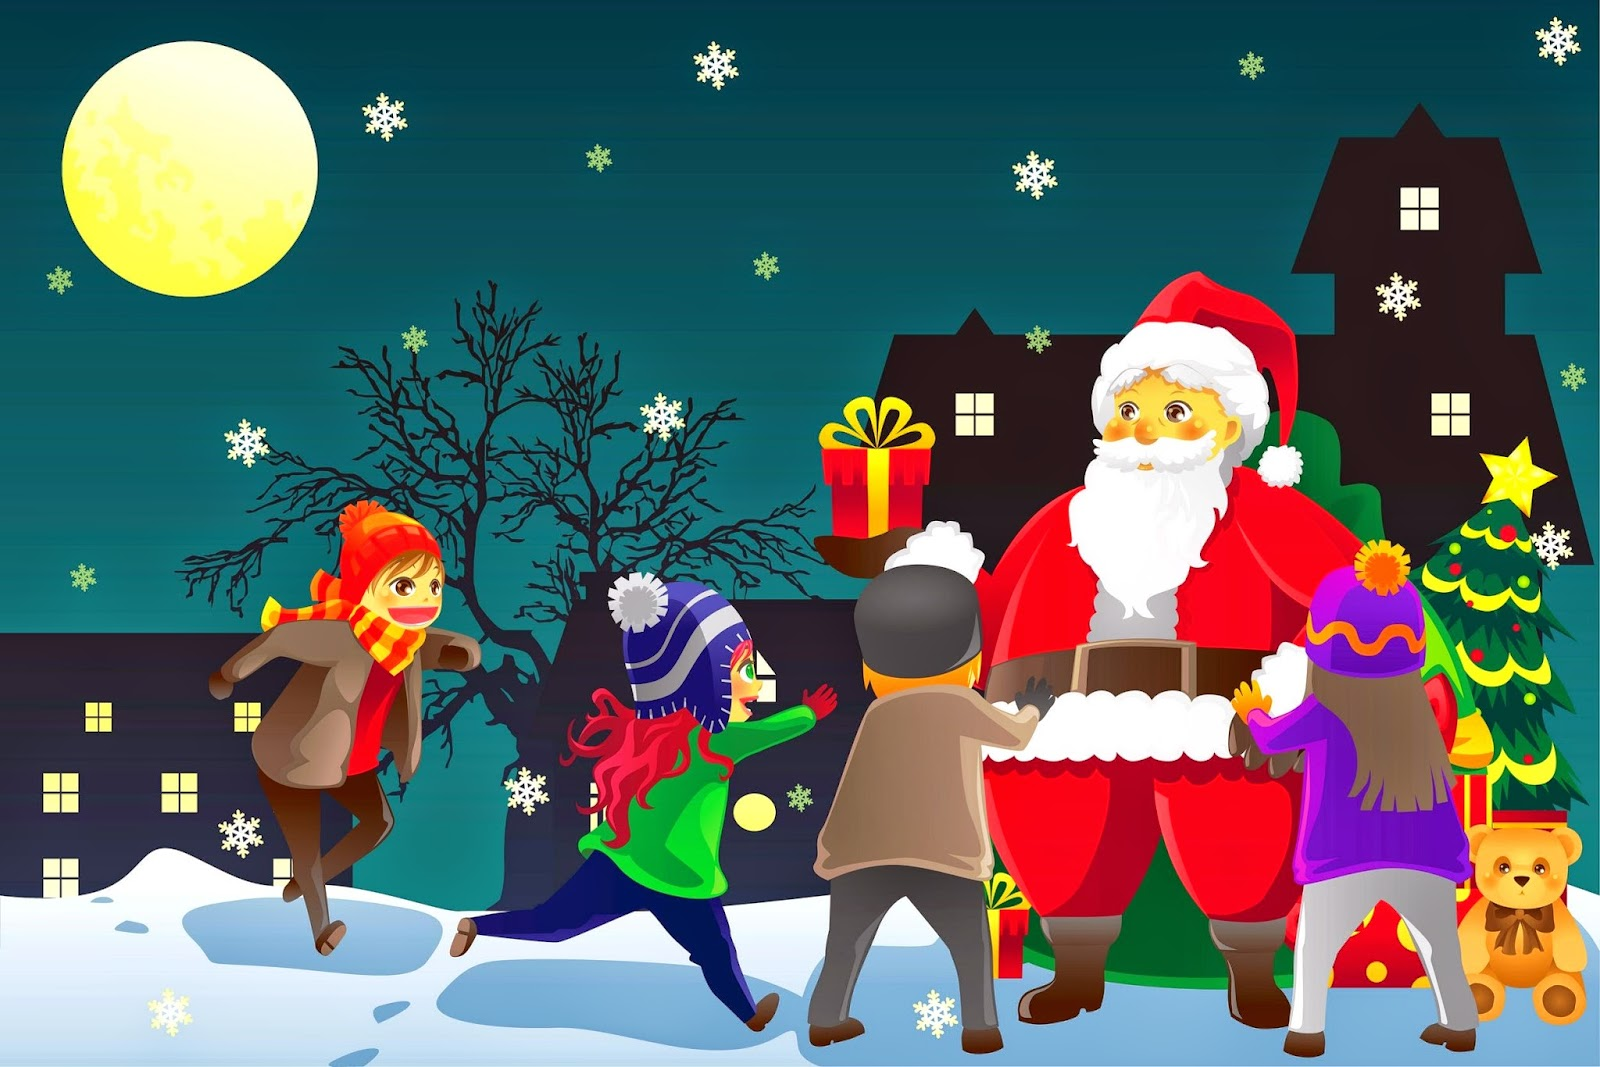 Uncategorized Christmas Story For Children santas christmas bedtimeshortstories story for kids